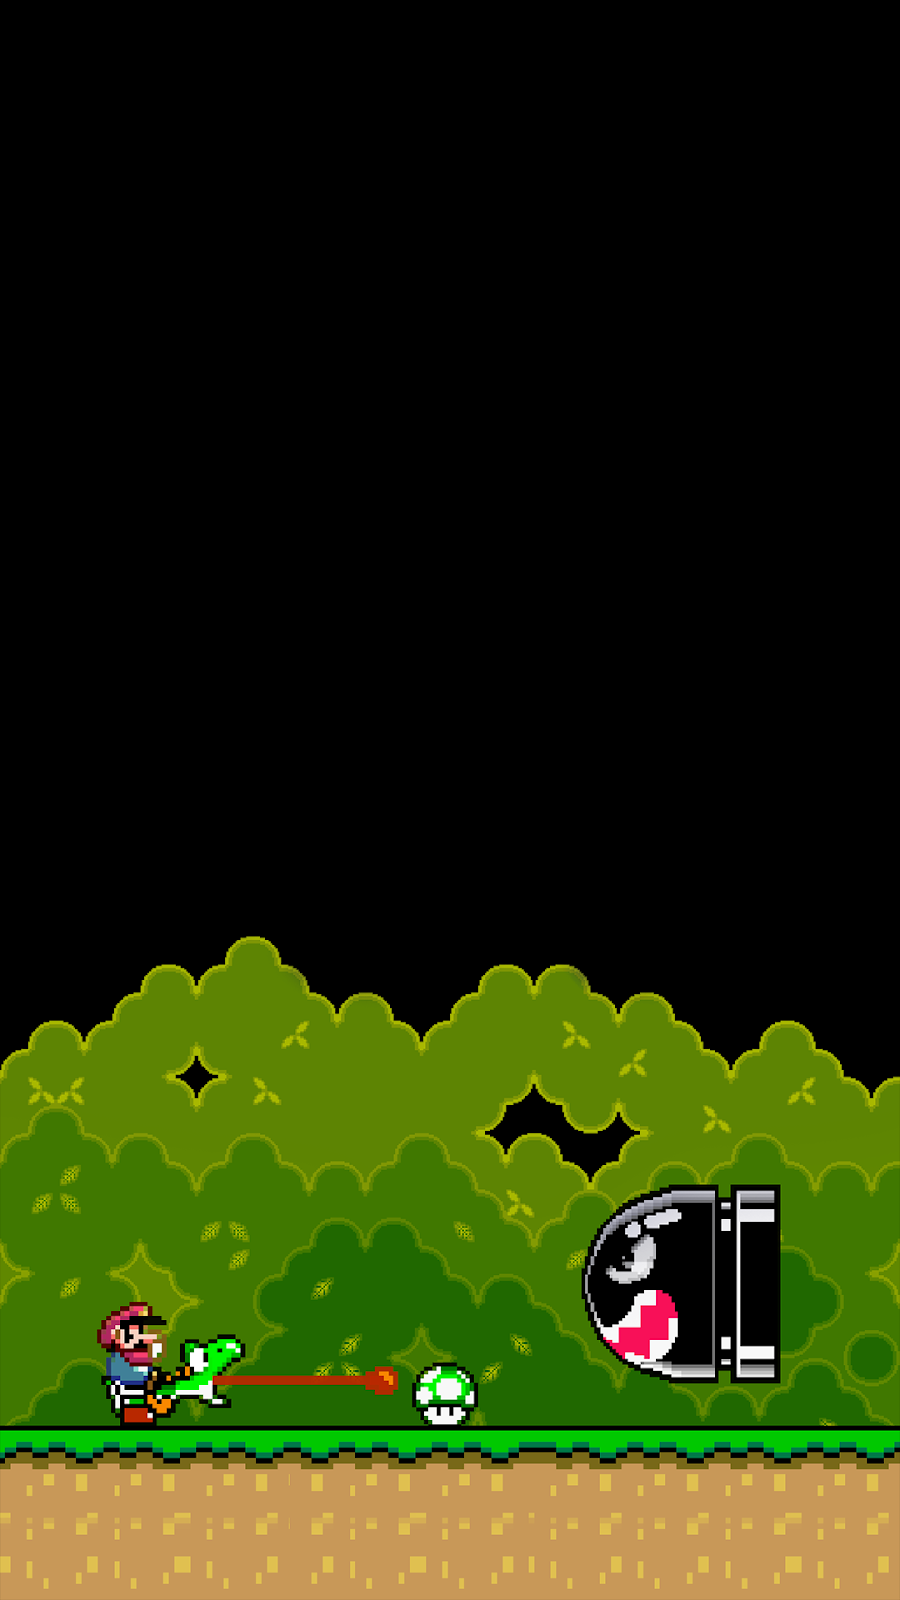 Super mario world amoled wallpaper 1080p